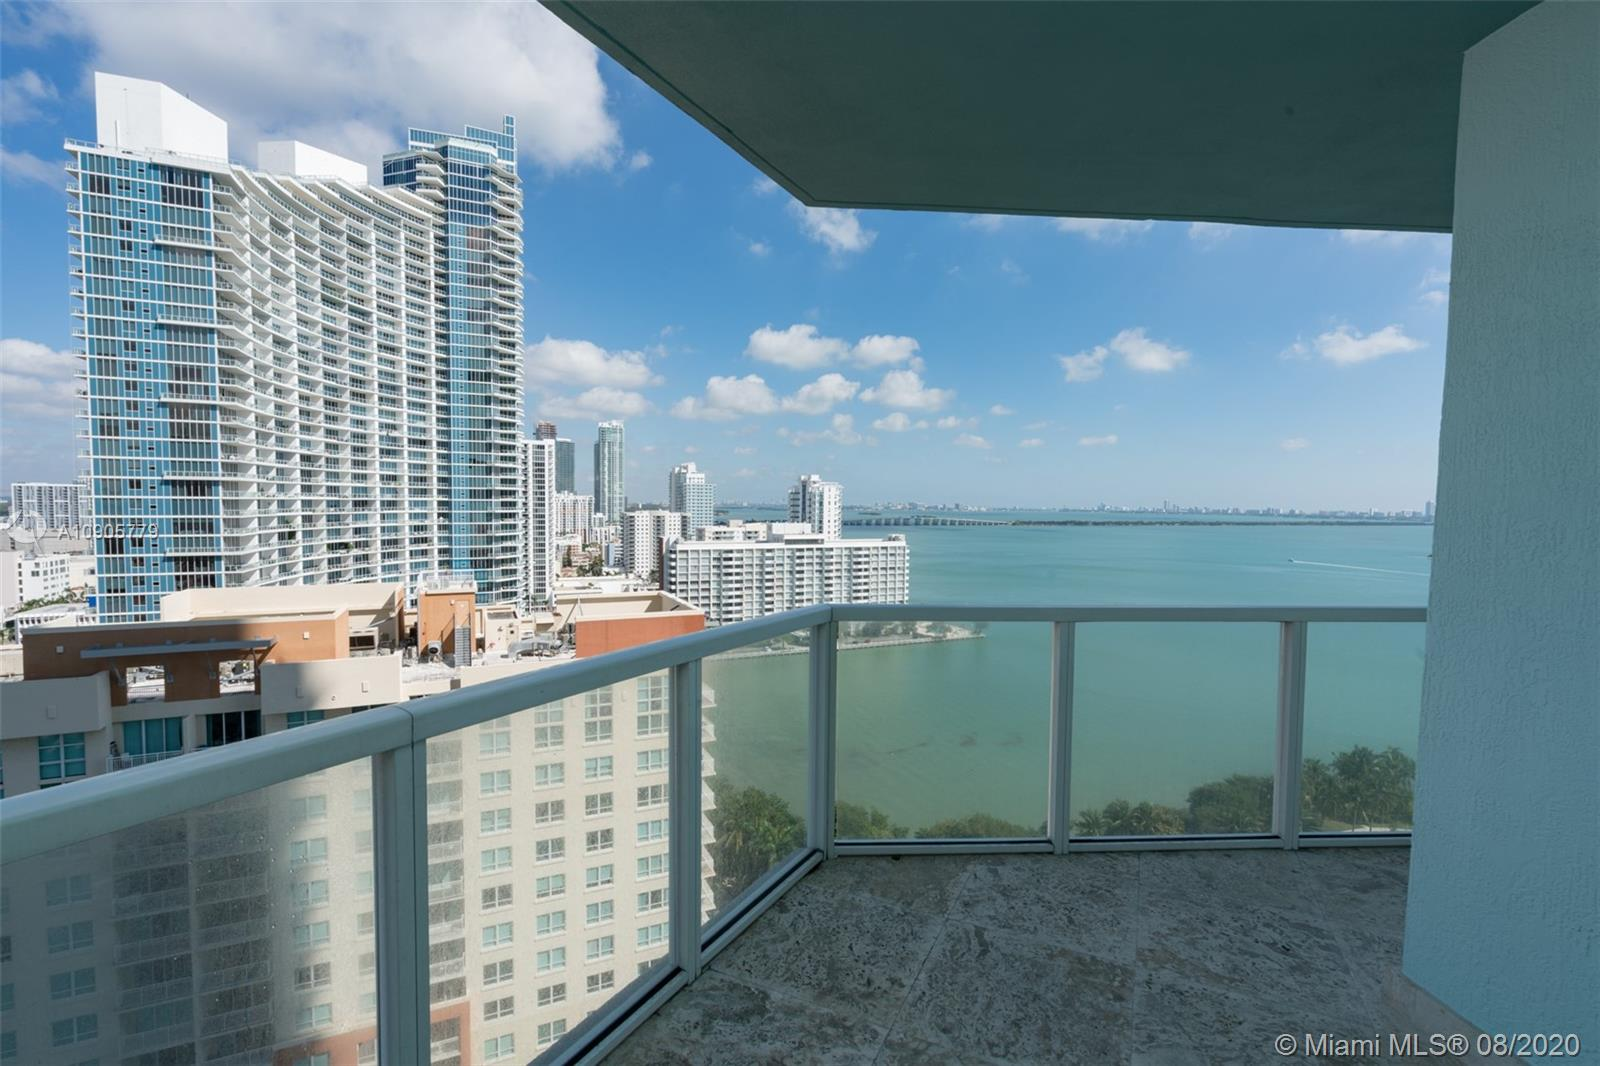 """Incredible 3 Bed / 3 Bath unit on the 19th floor at sought after Quantum on the Bay. Corner unit with direct-water and city views. 1,620 sq/ft of interior space with 254 sq/ft terrace per floor plan. Gourmet kitchen with Quartz counters & stainless steel appliances. Polished 24"""" marble flooring throughout and custom closets. Hi speed Internet & Cable included. Amenities 2 pools, Newly renovated fitness center, sauna, theater, club room, valet parking, convenience store in lobby. Centrally located on Edgewater close to Wynwood, Design district, Downtown Miami, Minutes to the Beach and Miami International Airport & more"""